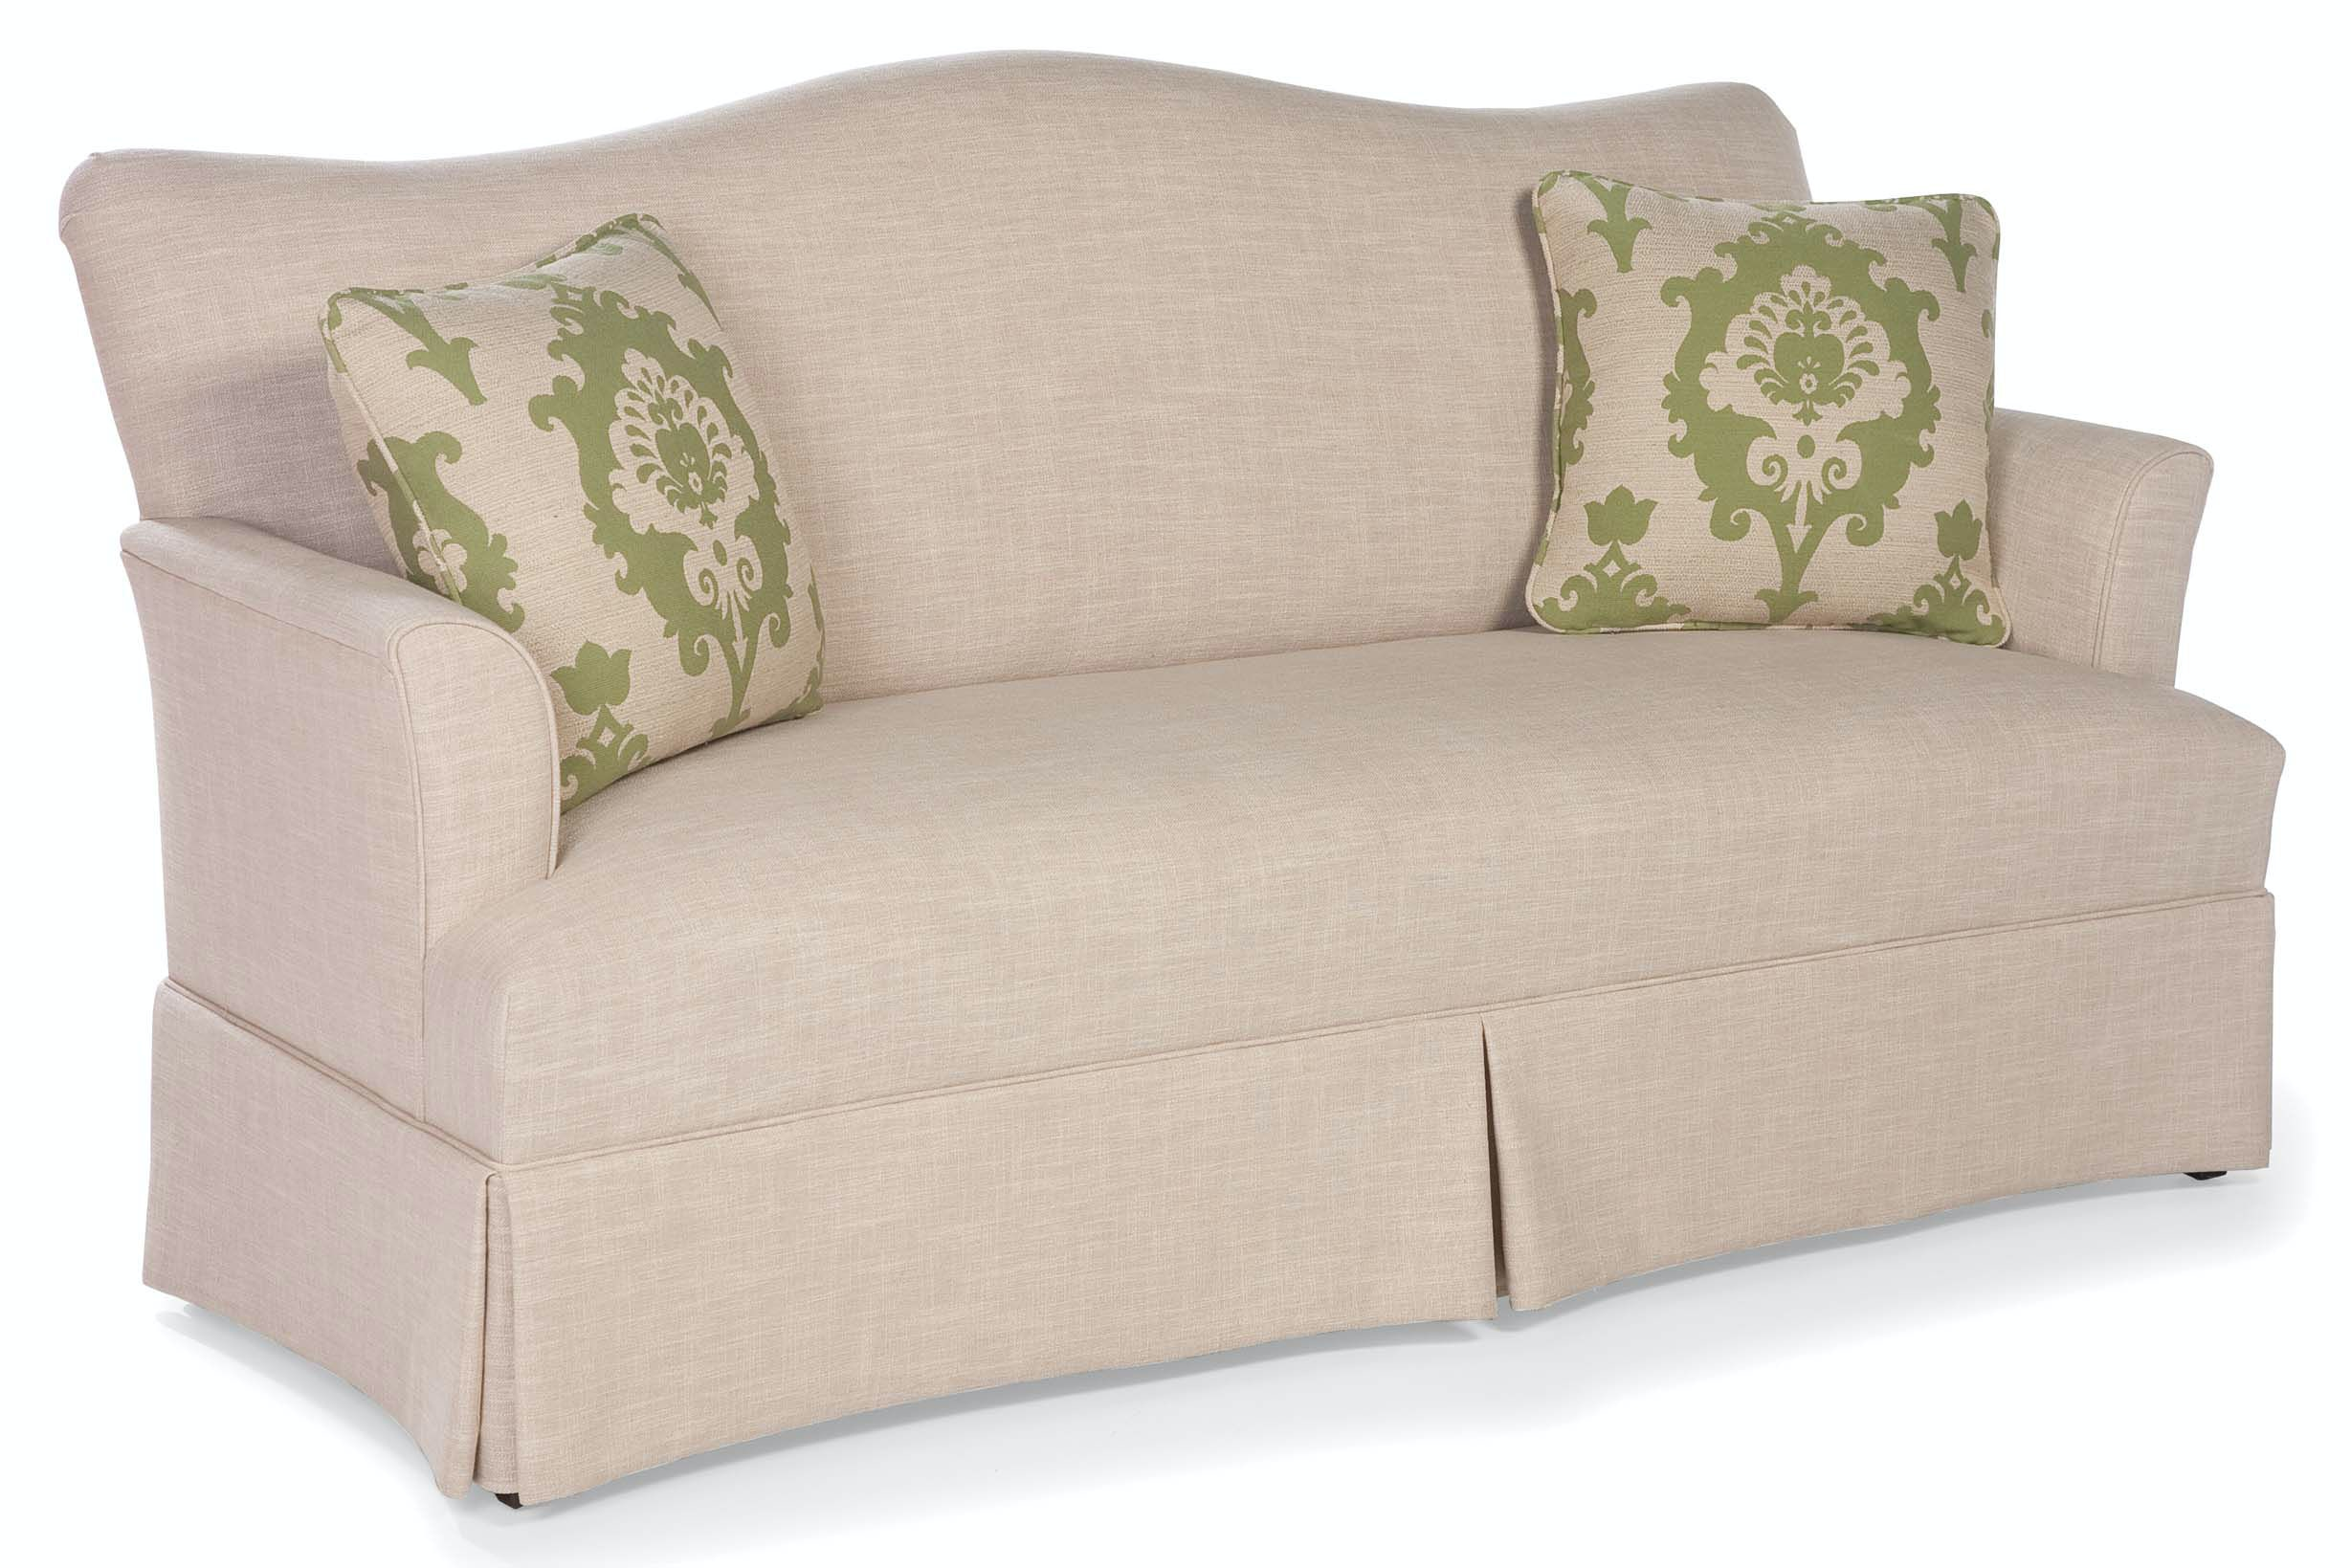 Fairfield Chair Company Monroe Sofa 2770 50